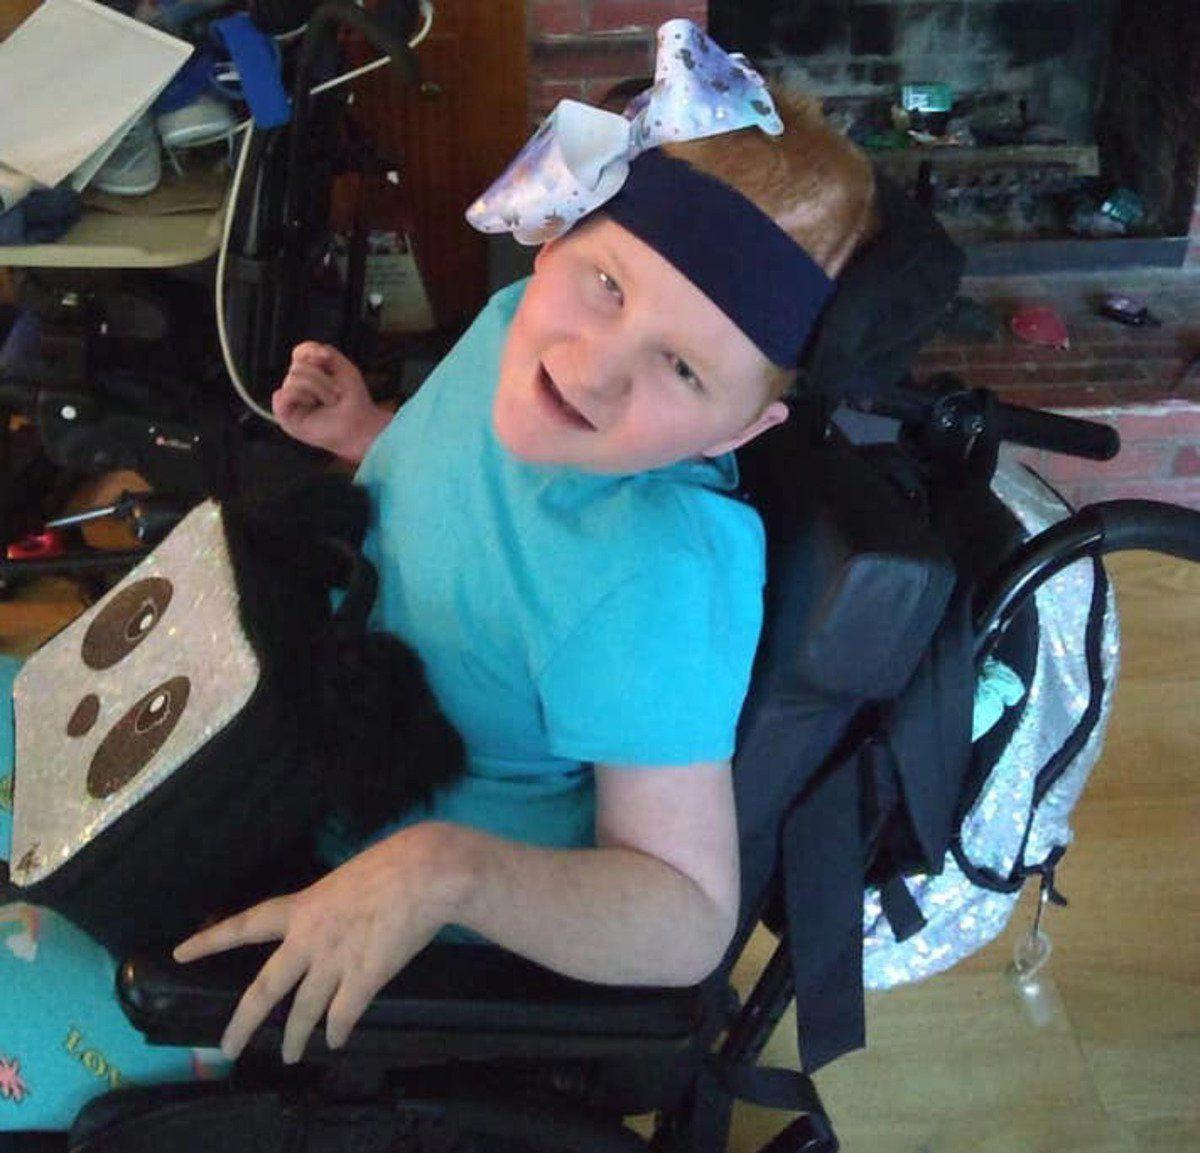 Alivia's Fight A year after truck-bicycle wreck, 10-year-old battles toward recovery